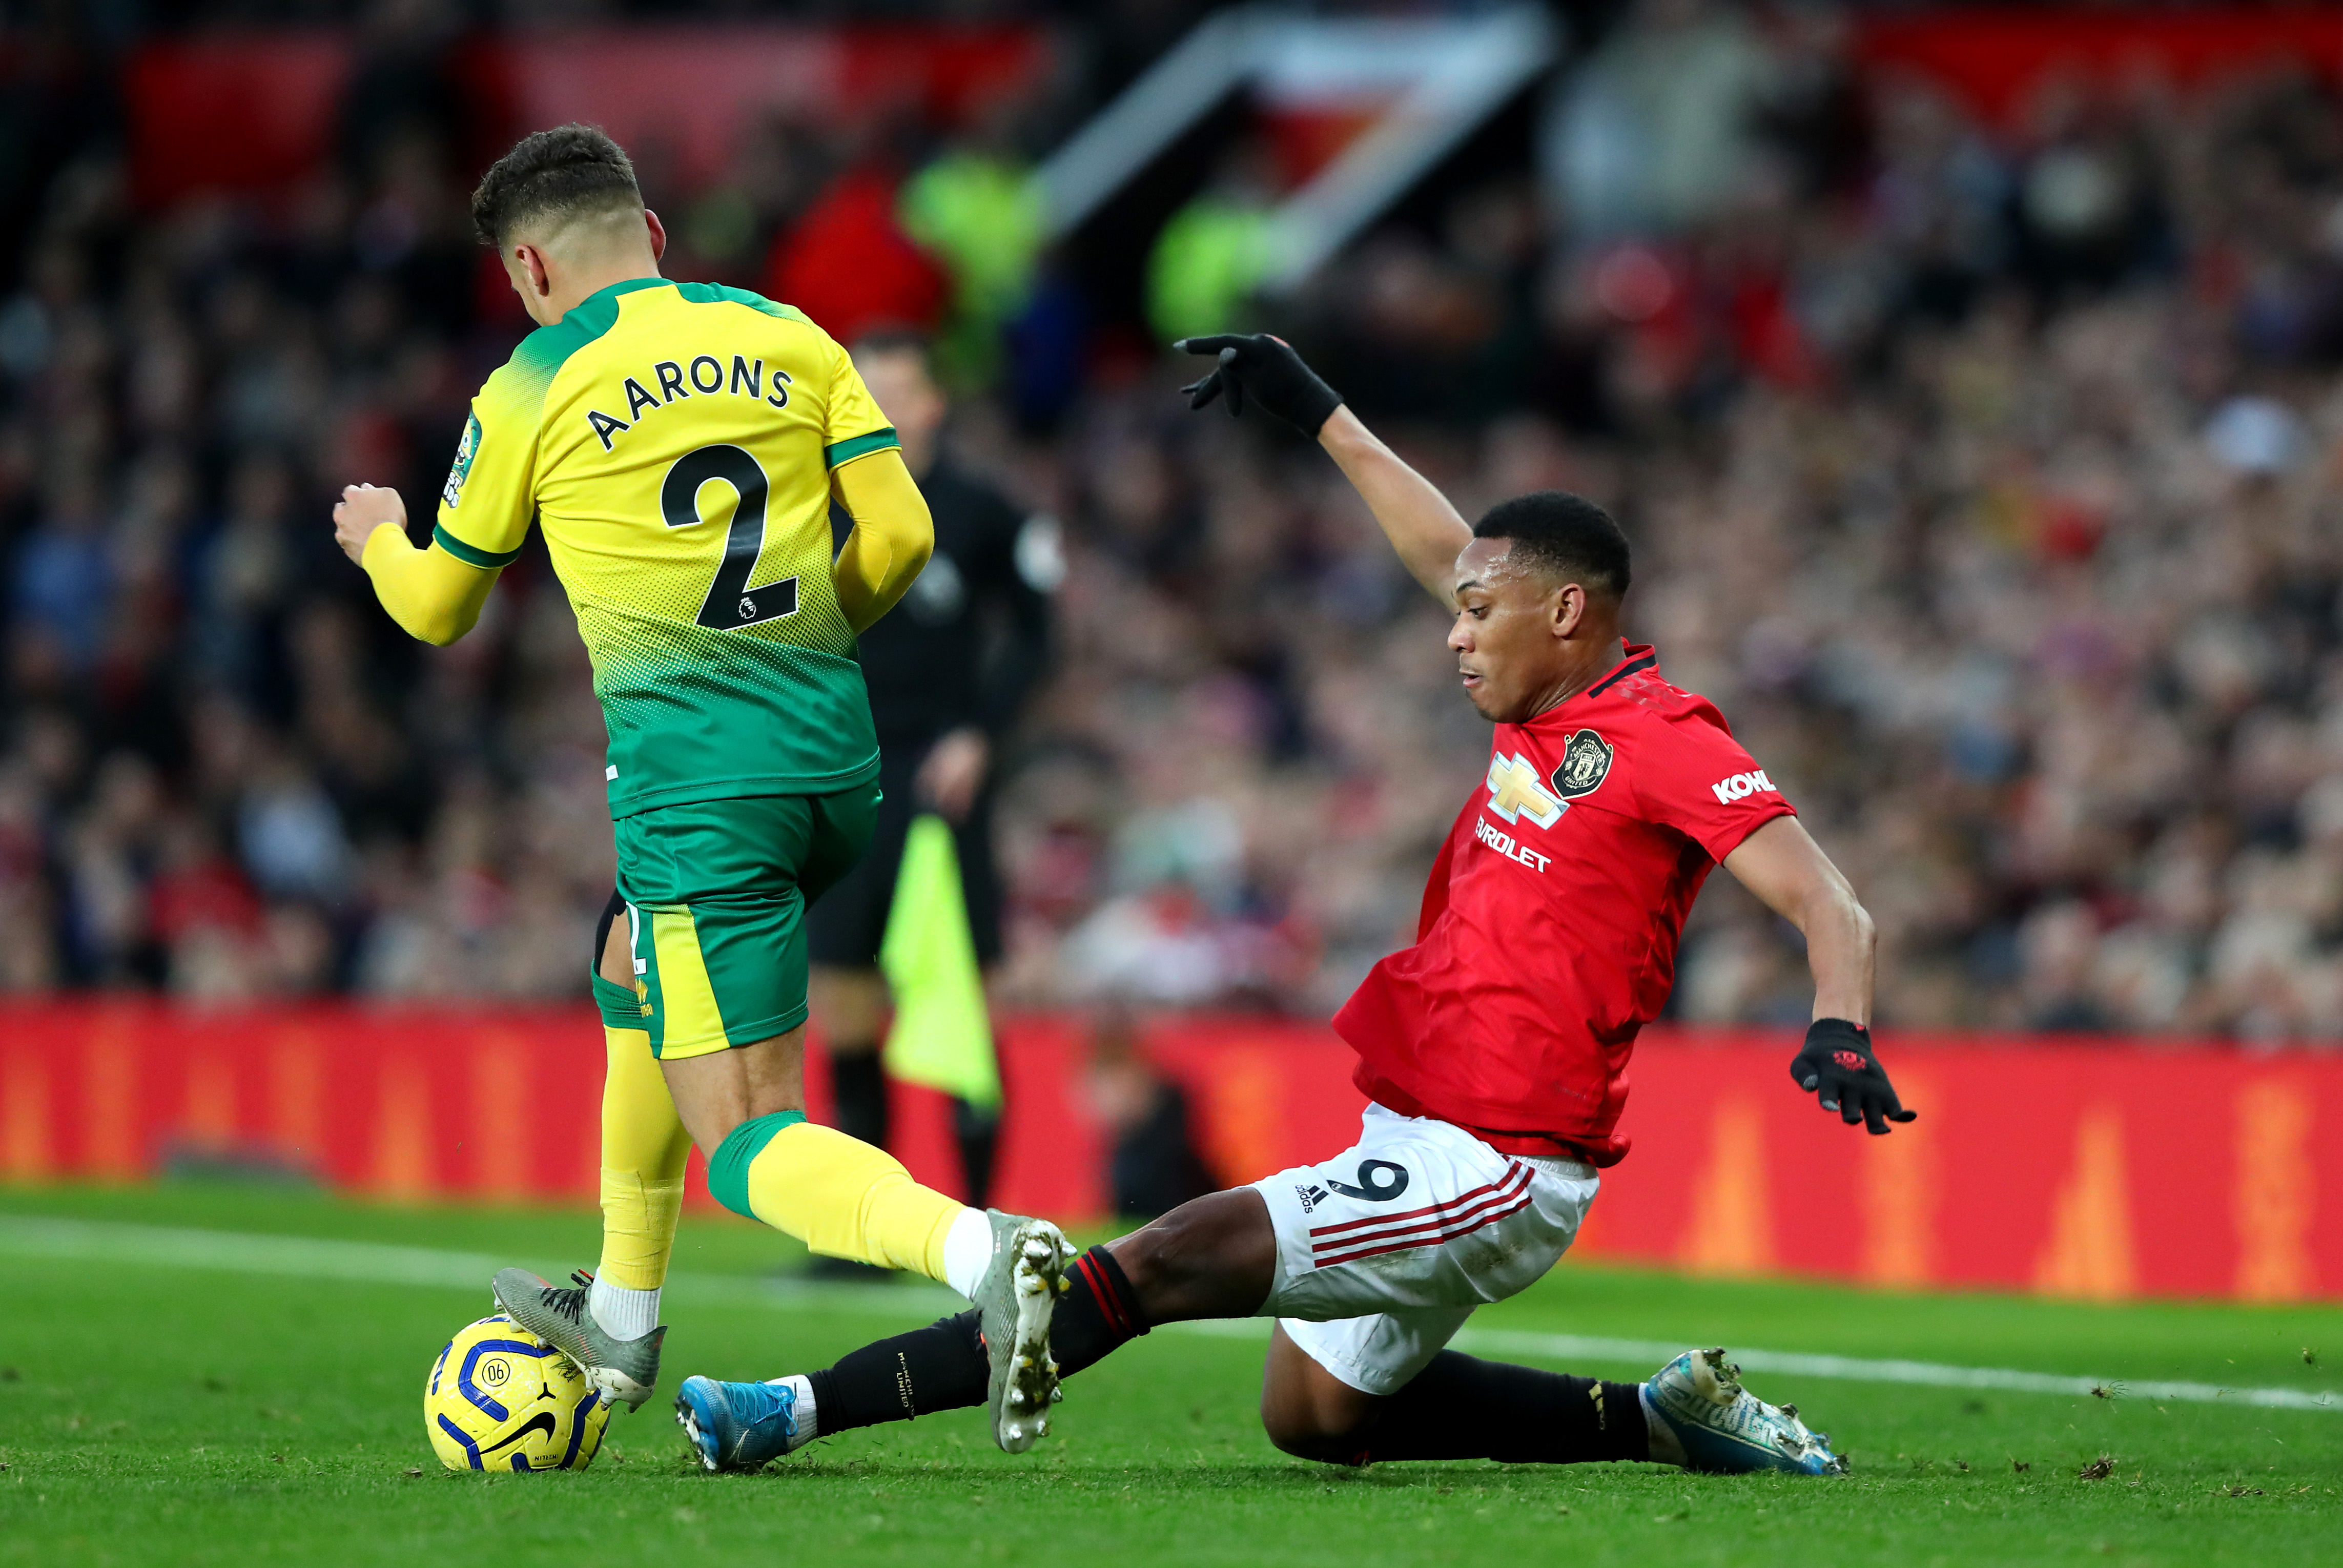 Could Aarons be lining up alongside Anthony Martial next season? (Photo by Alex Livesey/Getty Images)